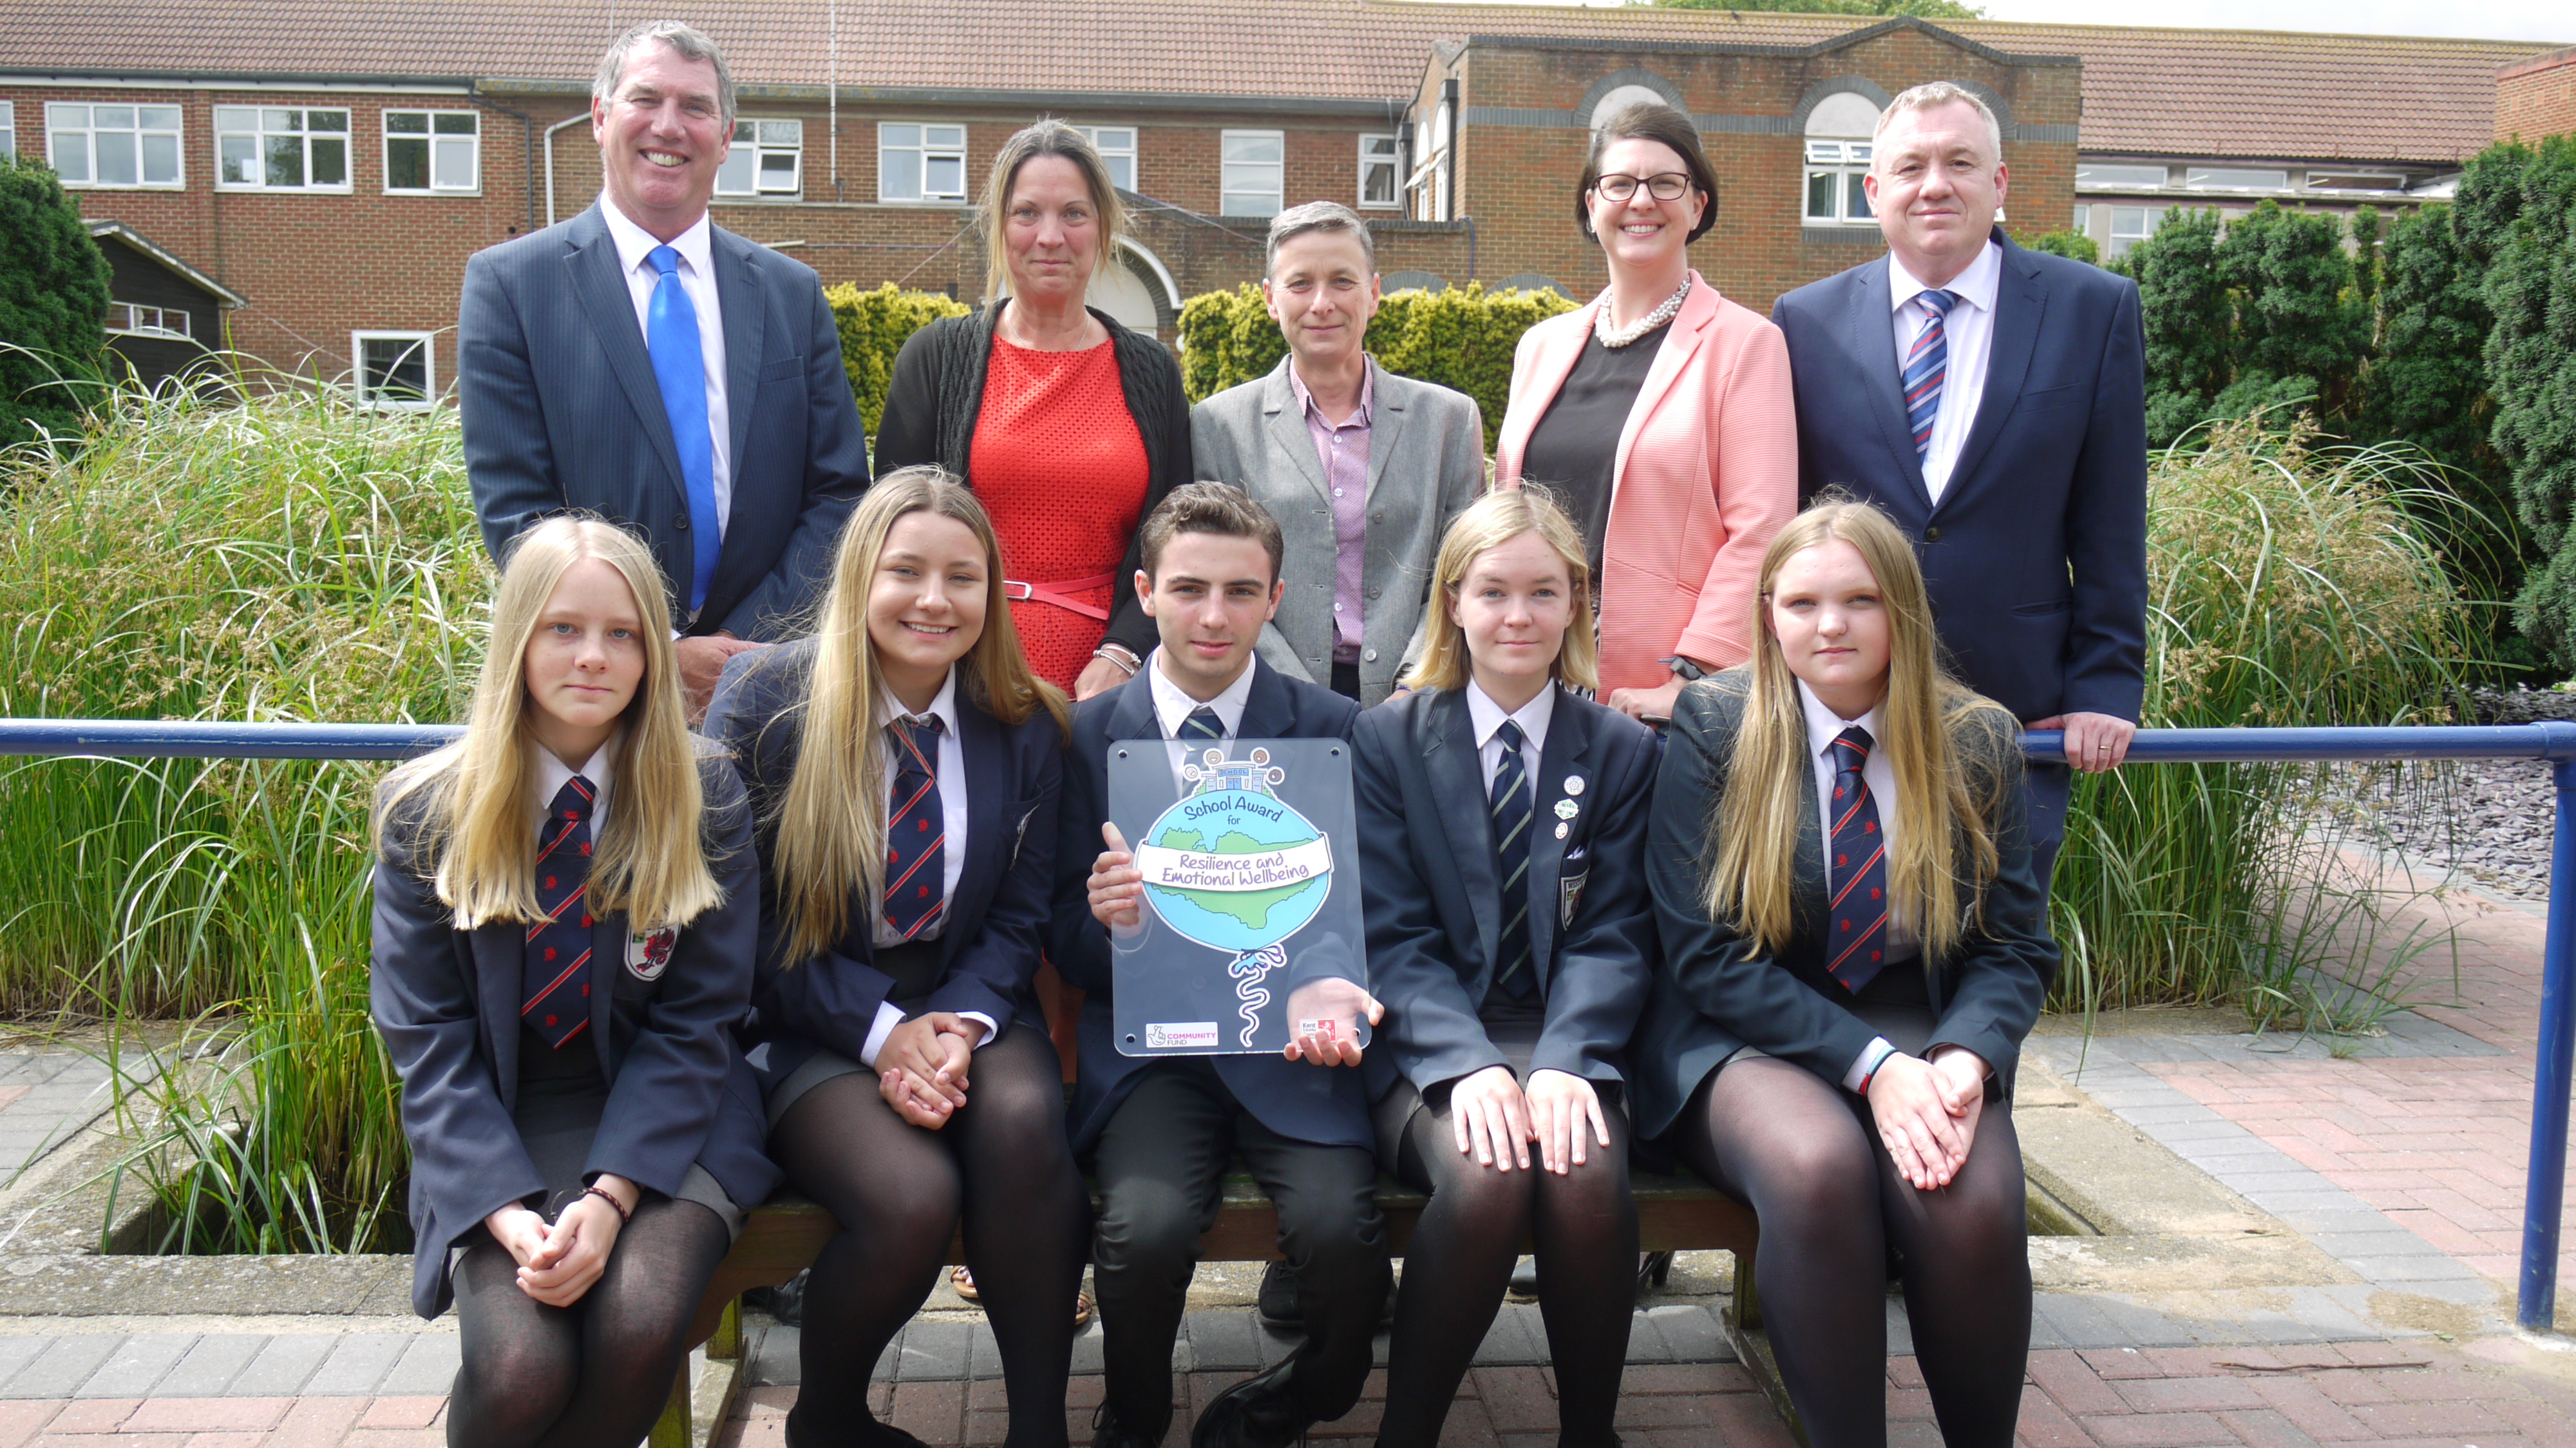 Schools Award for Resilience and Emotional Wellbeing